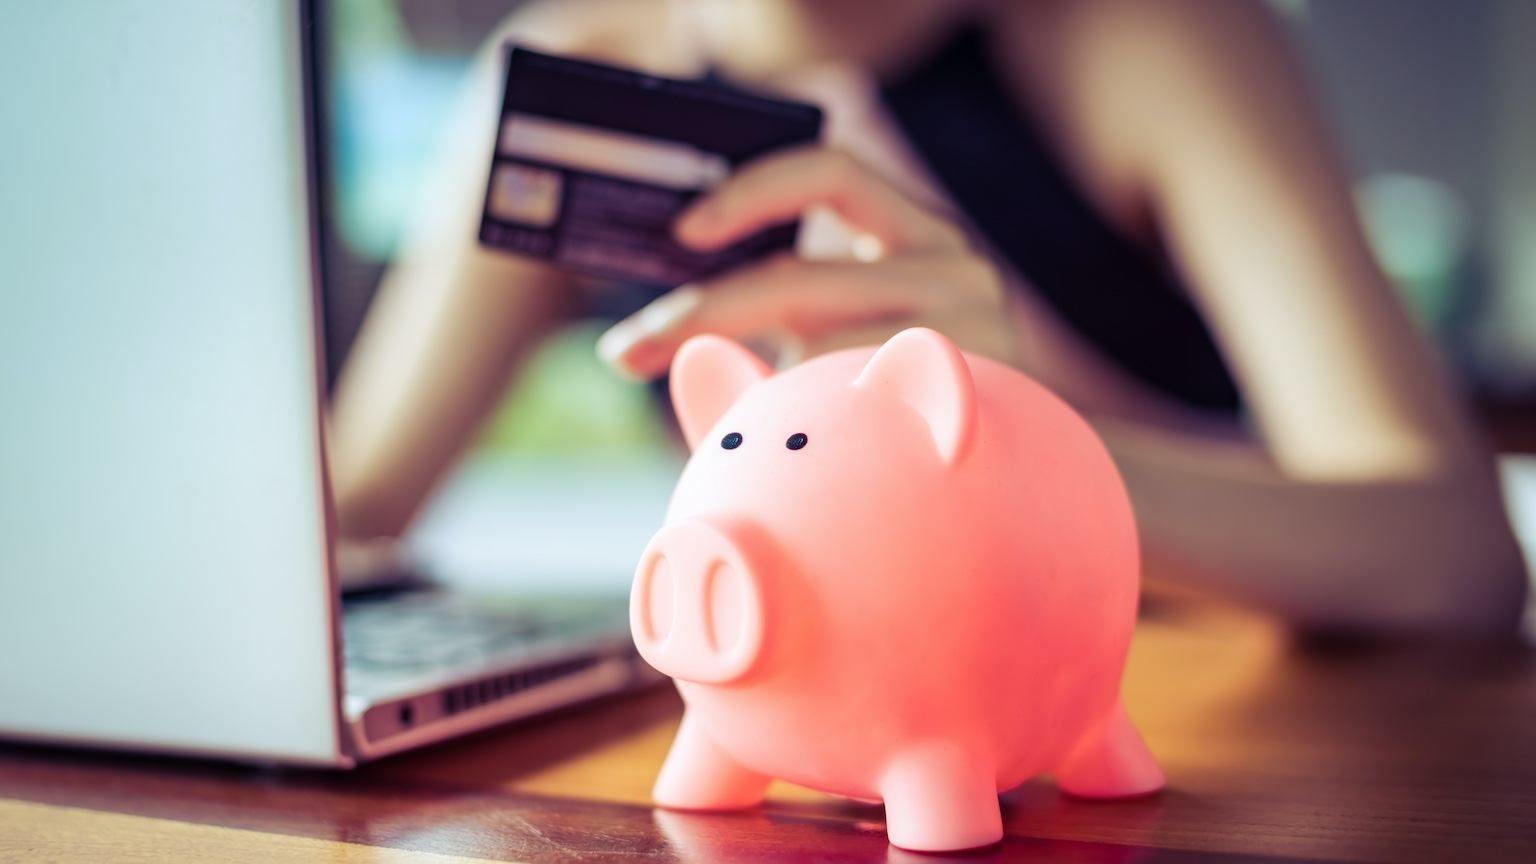 A piggy bank sitting in front of a woman who is holding a credit card and looking at a laptop.